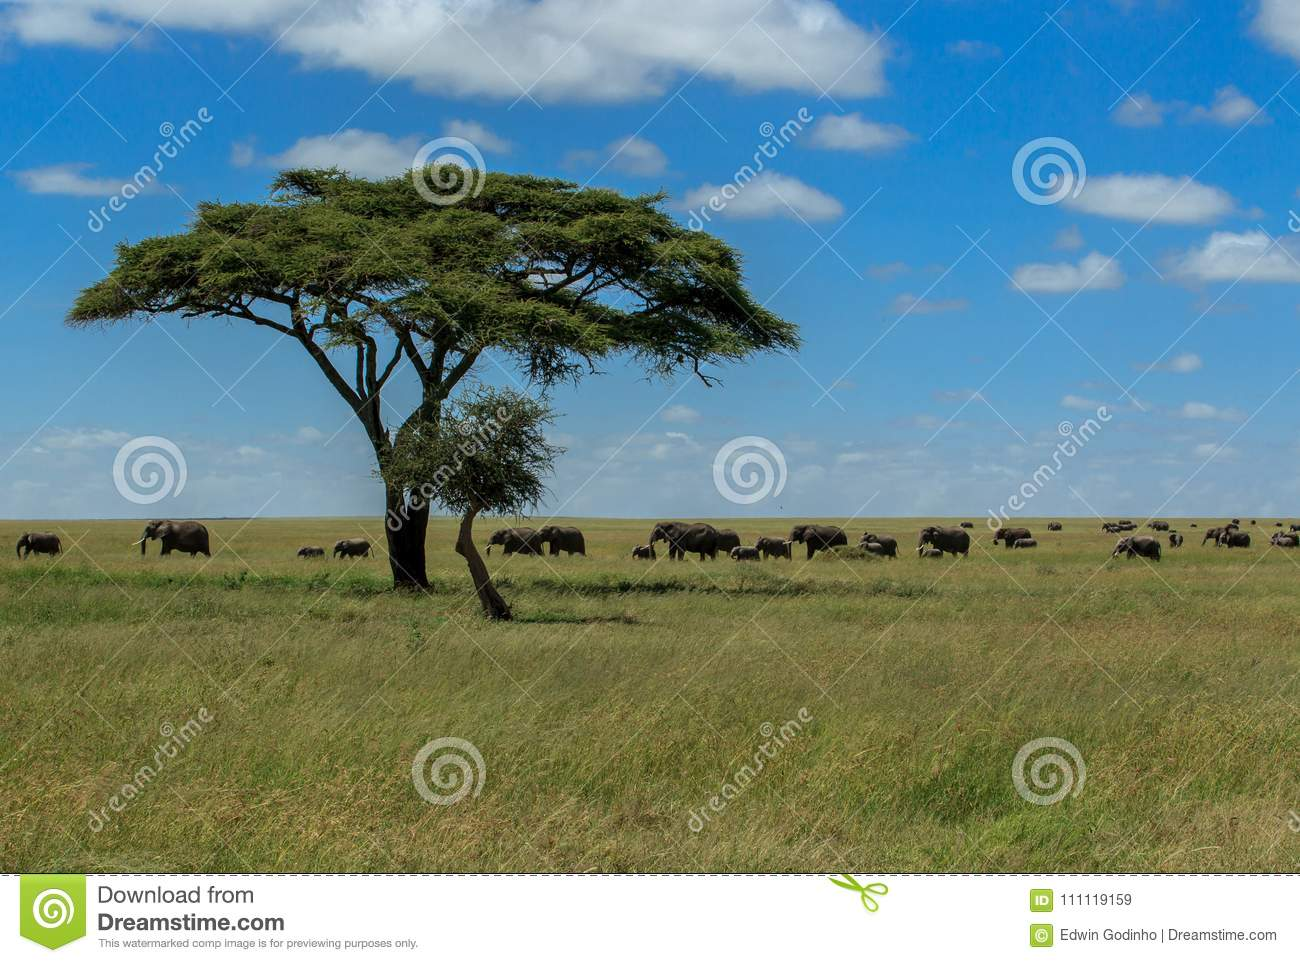 Hope - Herds of African Elephants in the Serengeti National Park